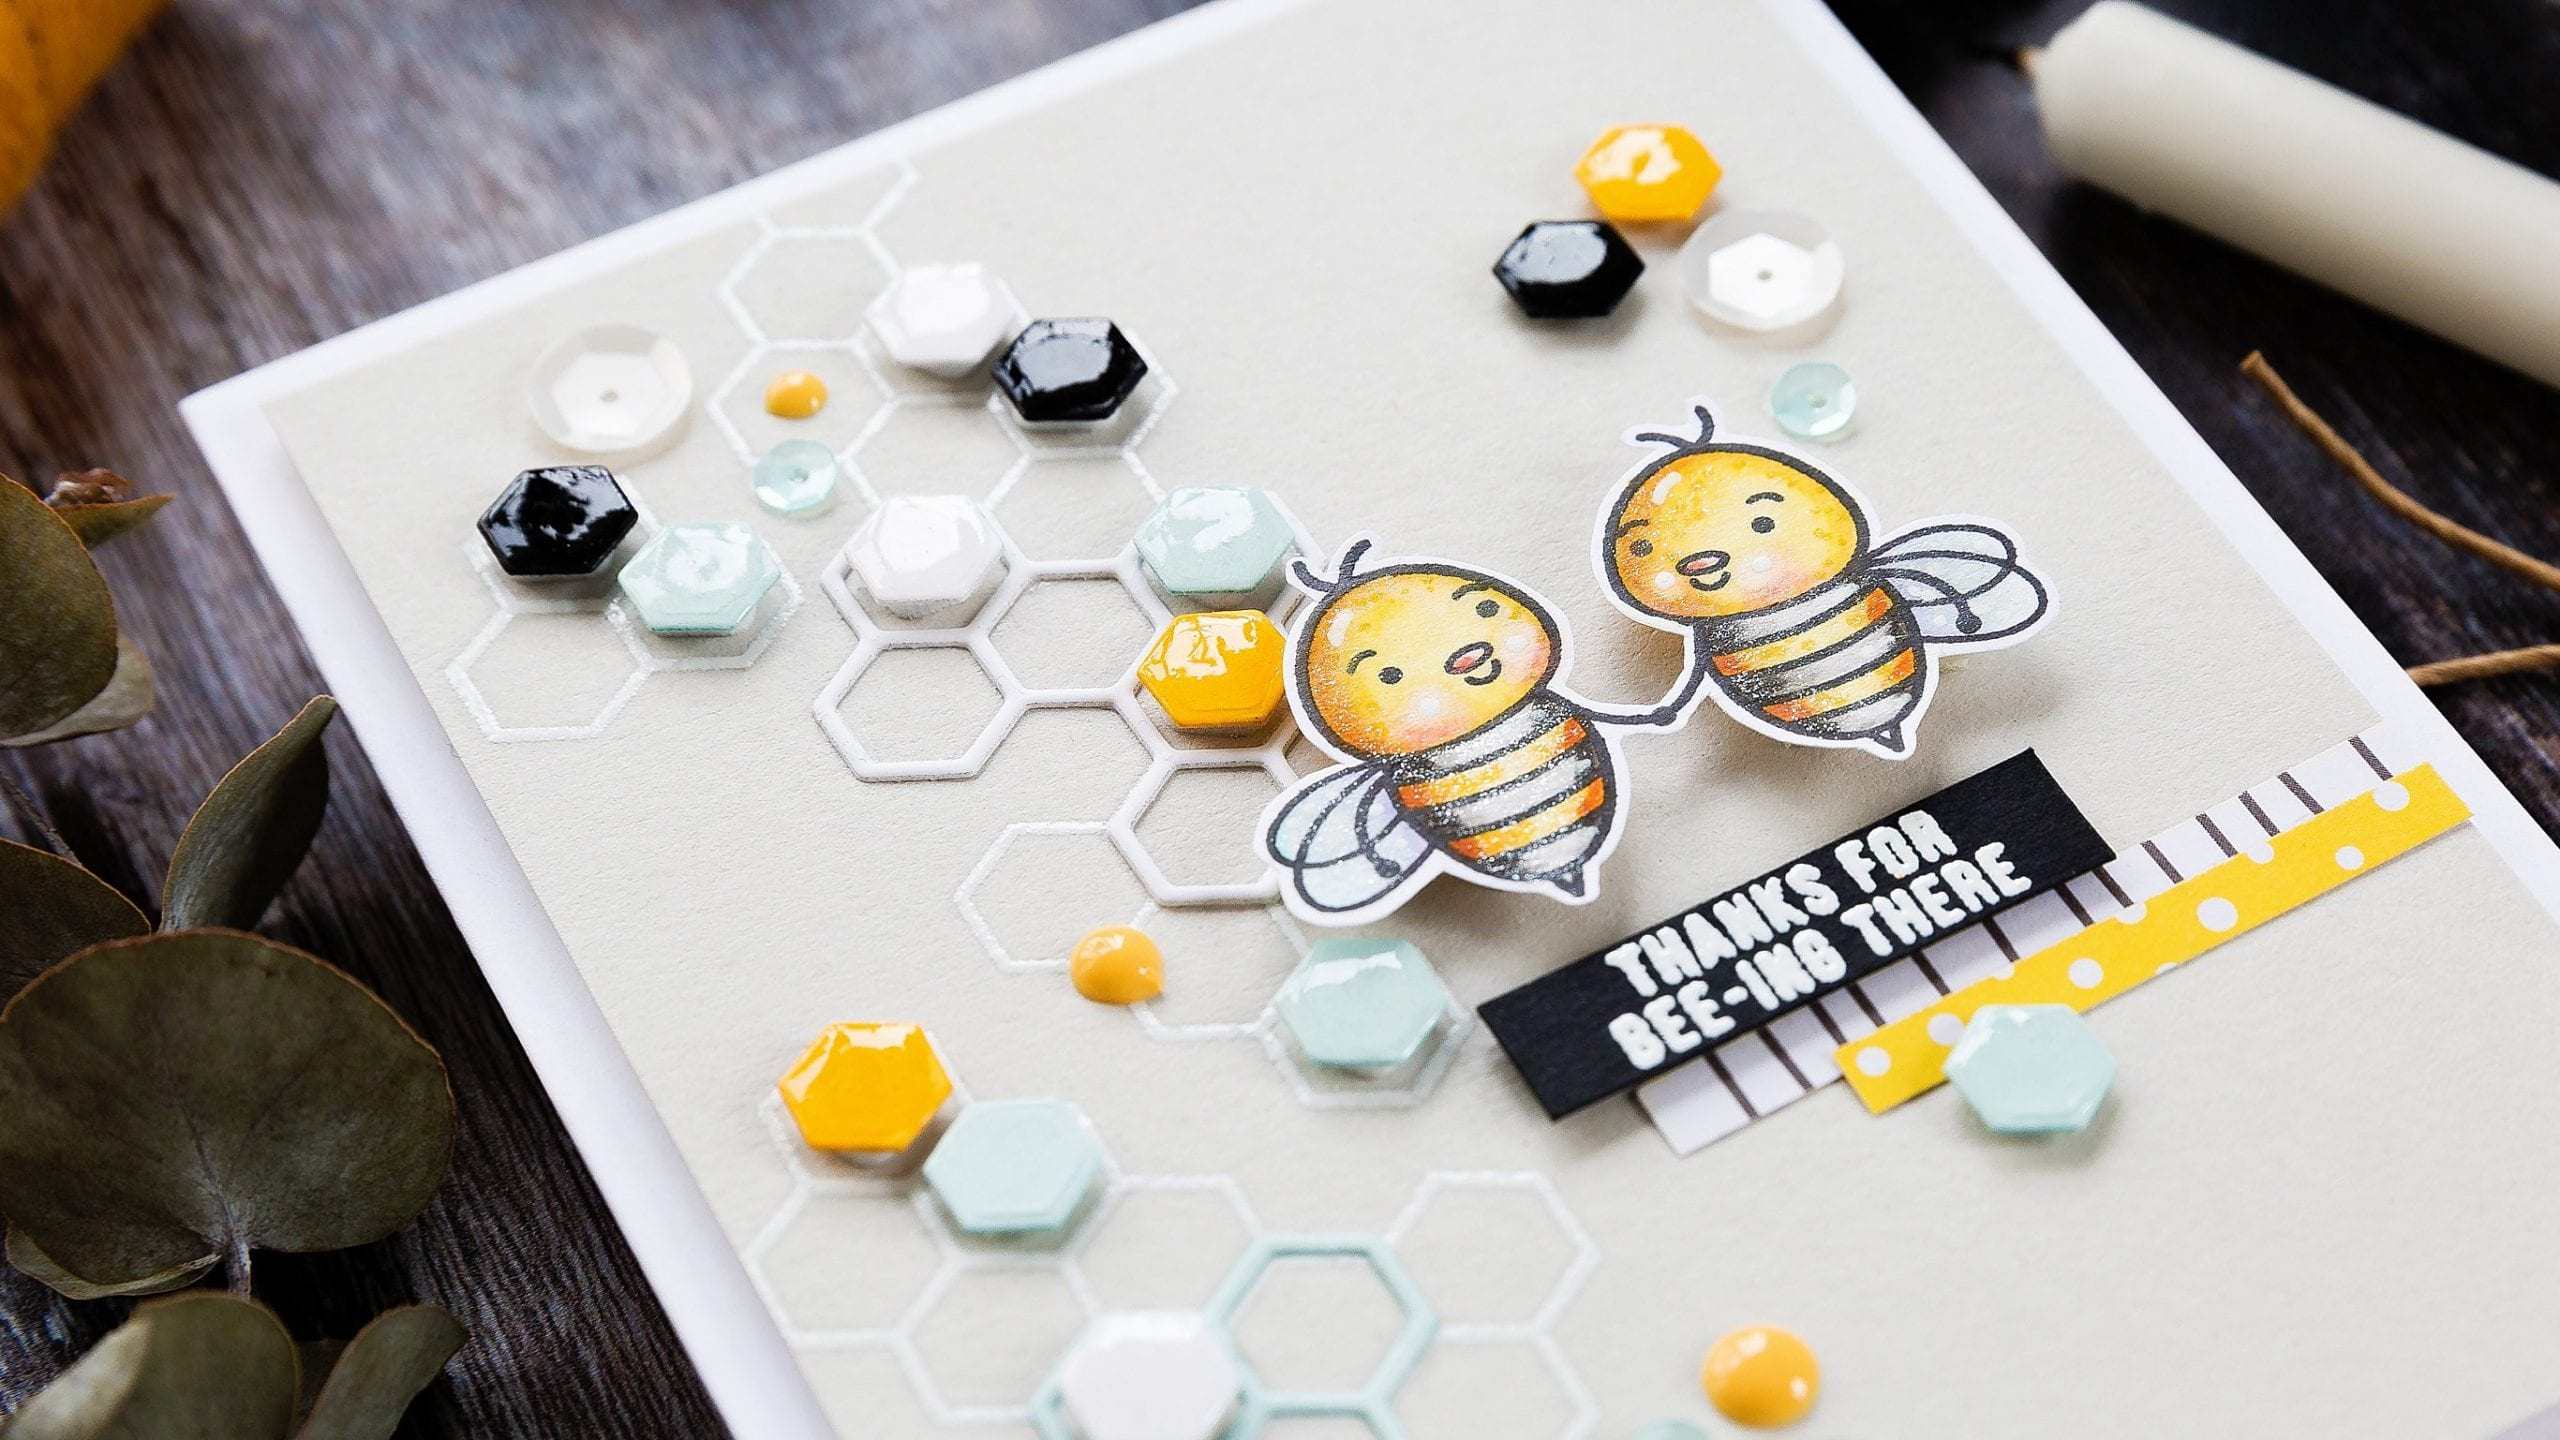 Playing with hexagons and bees. Handmade card by Debby Hughes using the July Card Kit from Simon Says Stamp. Find out more here: https://limedoodledesign.com/2019/07/take-two-playing-with-hexagons/